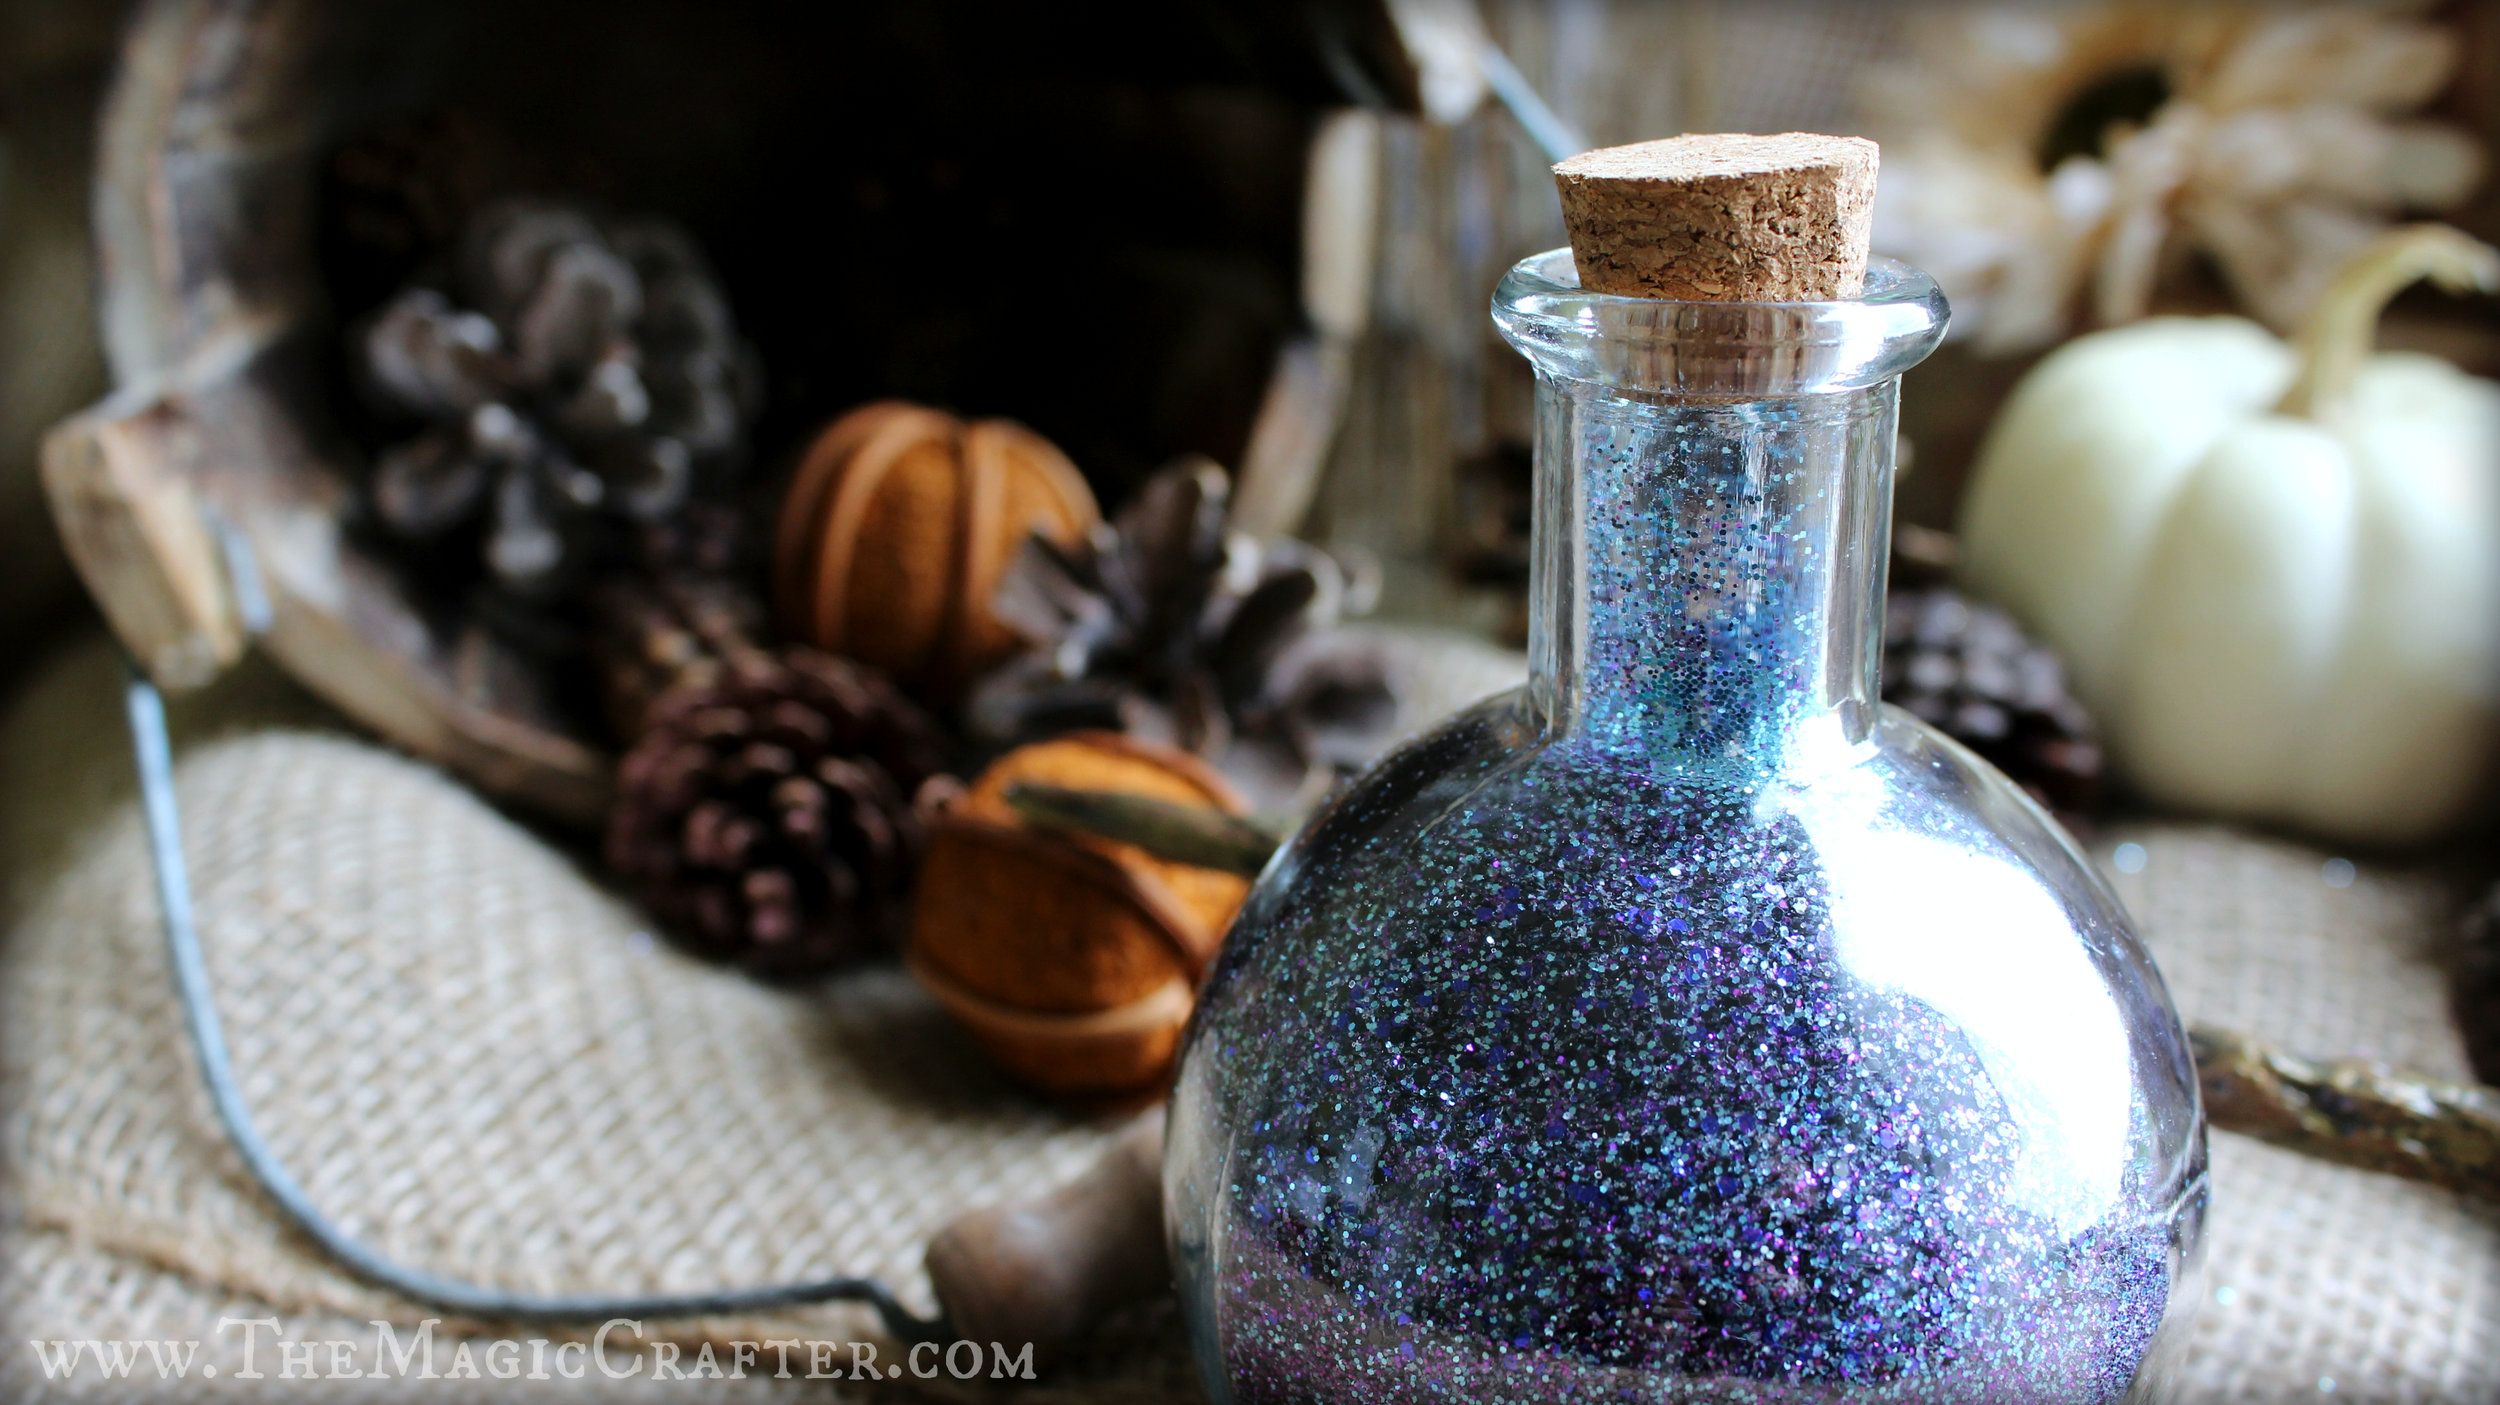 Magic potions make great props to use for decorating your home for Halloween. Whether you choose to scatter the fairydust or not is up to you!